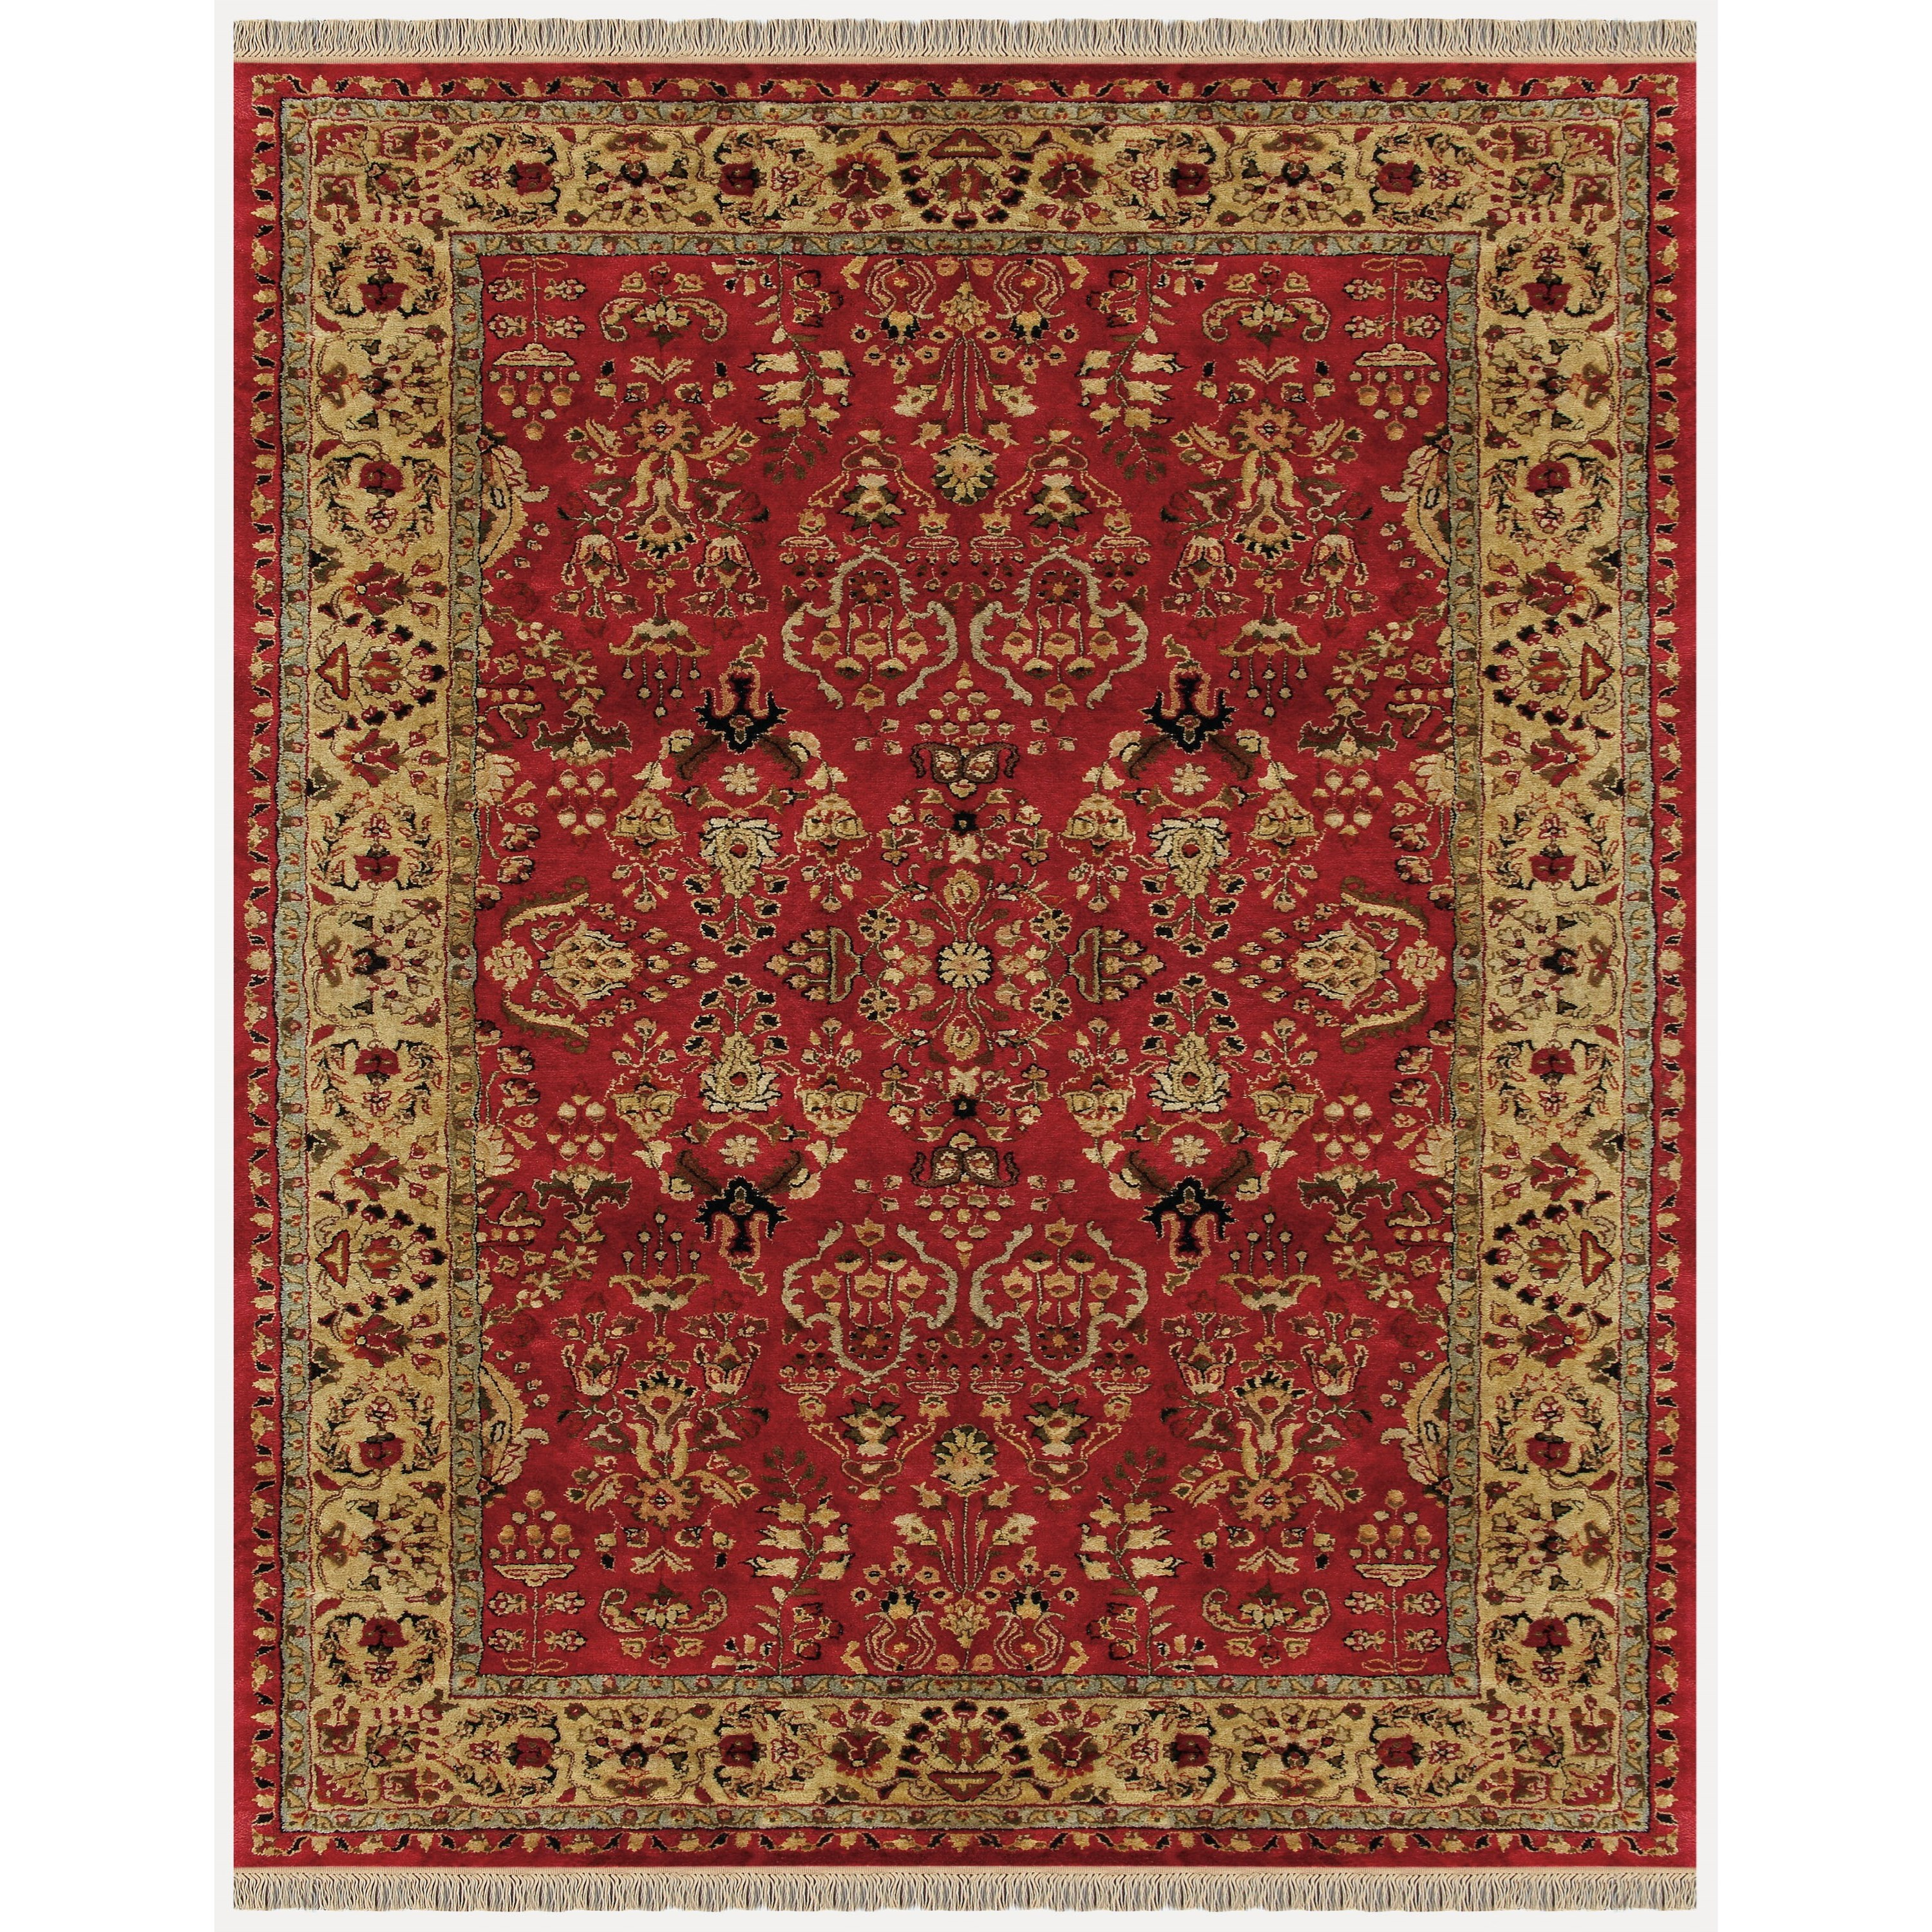 """Amore Red/Light Gold 3'-6"""" x 5'-6"""" Area Rug by Feizy Rugs at Sprintz Furniture"""